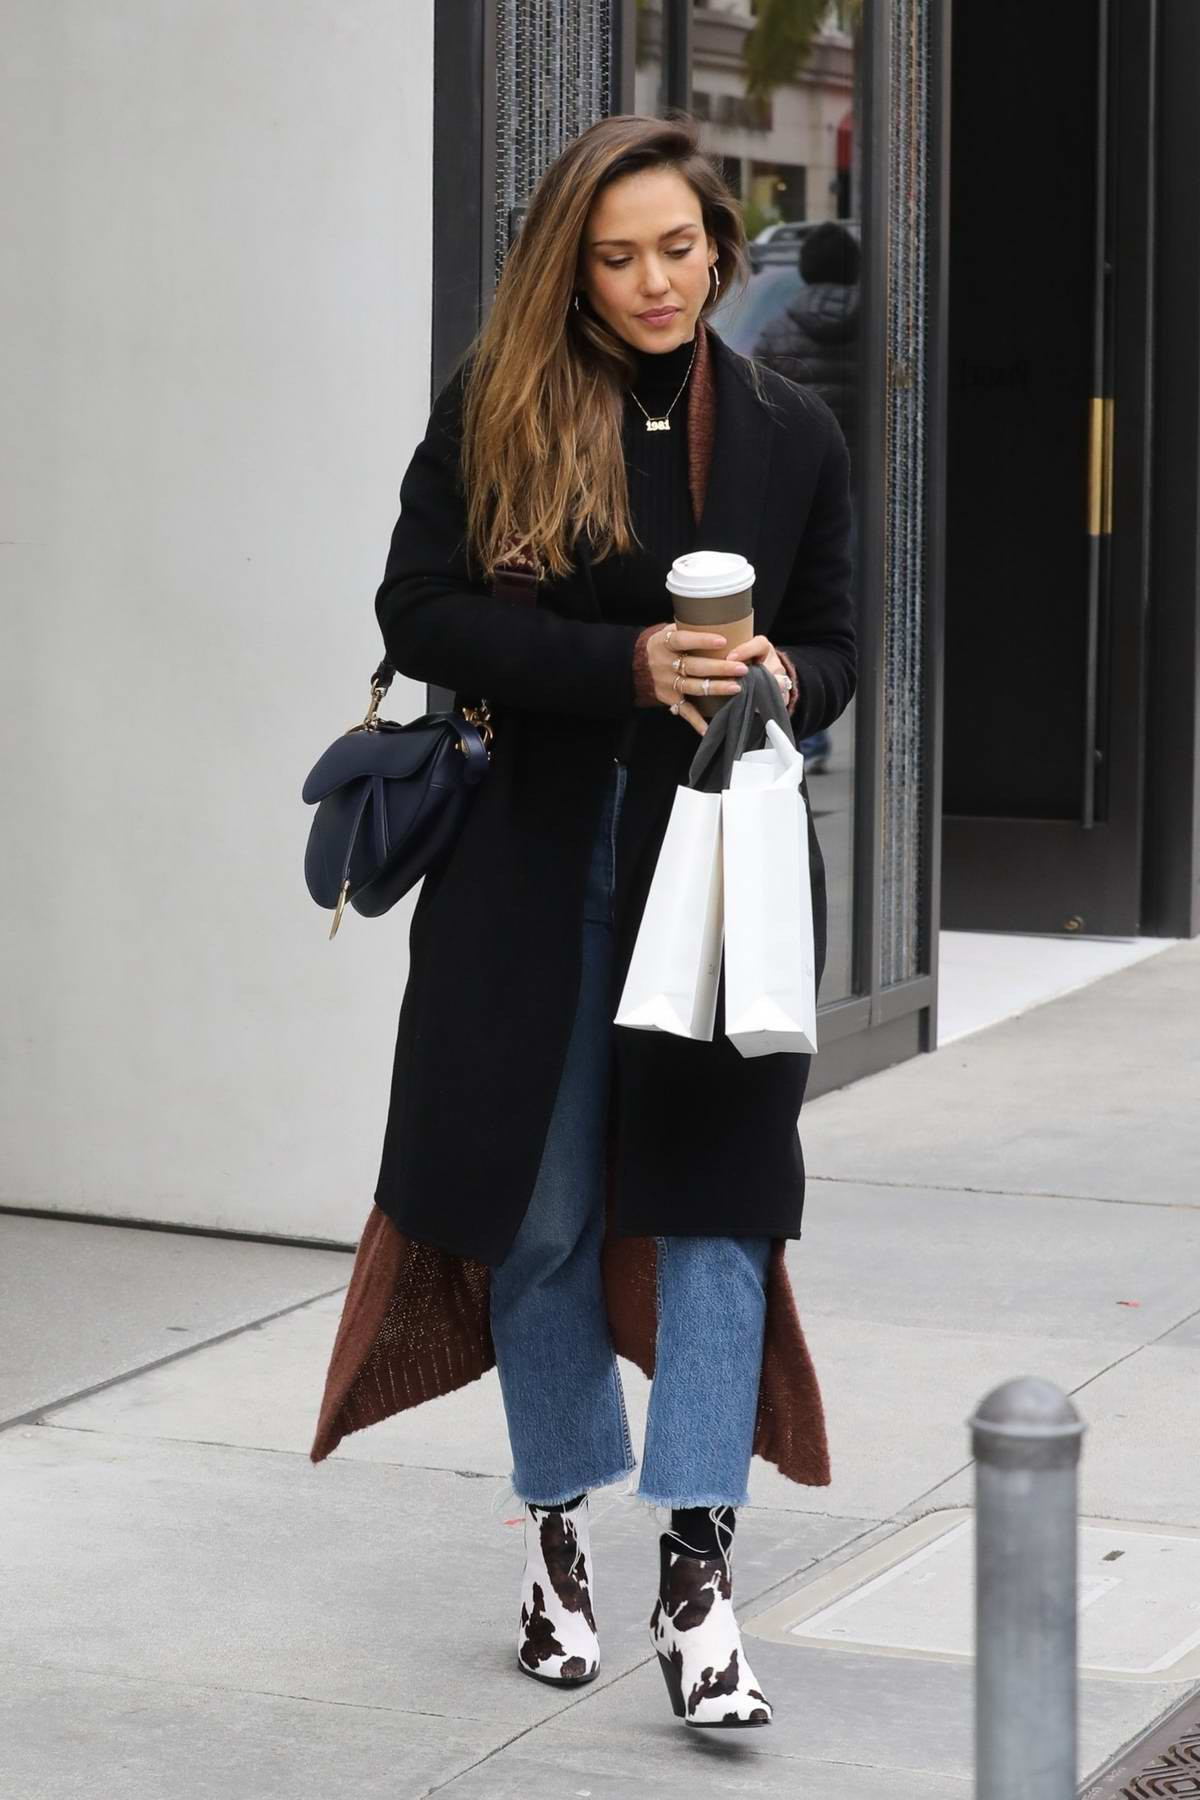 Jessica Alba enjoys a day of shopping on Rodeo Drive in Beverley Hills, Los Angeles